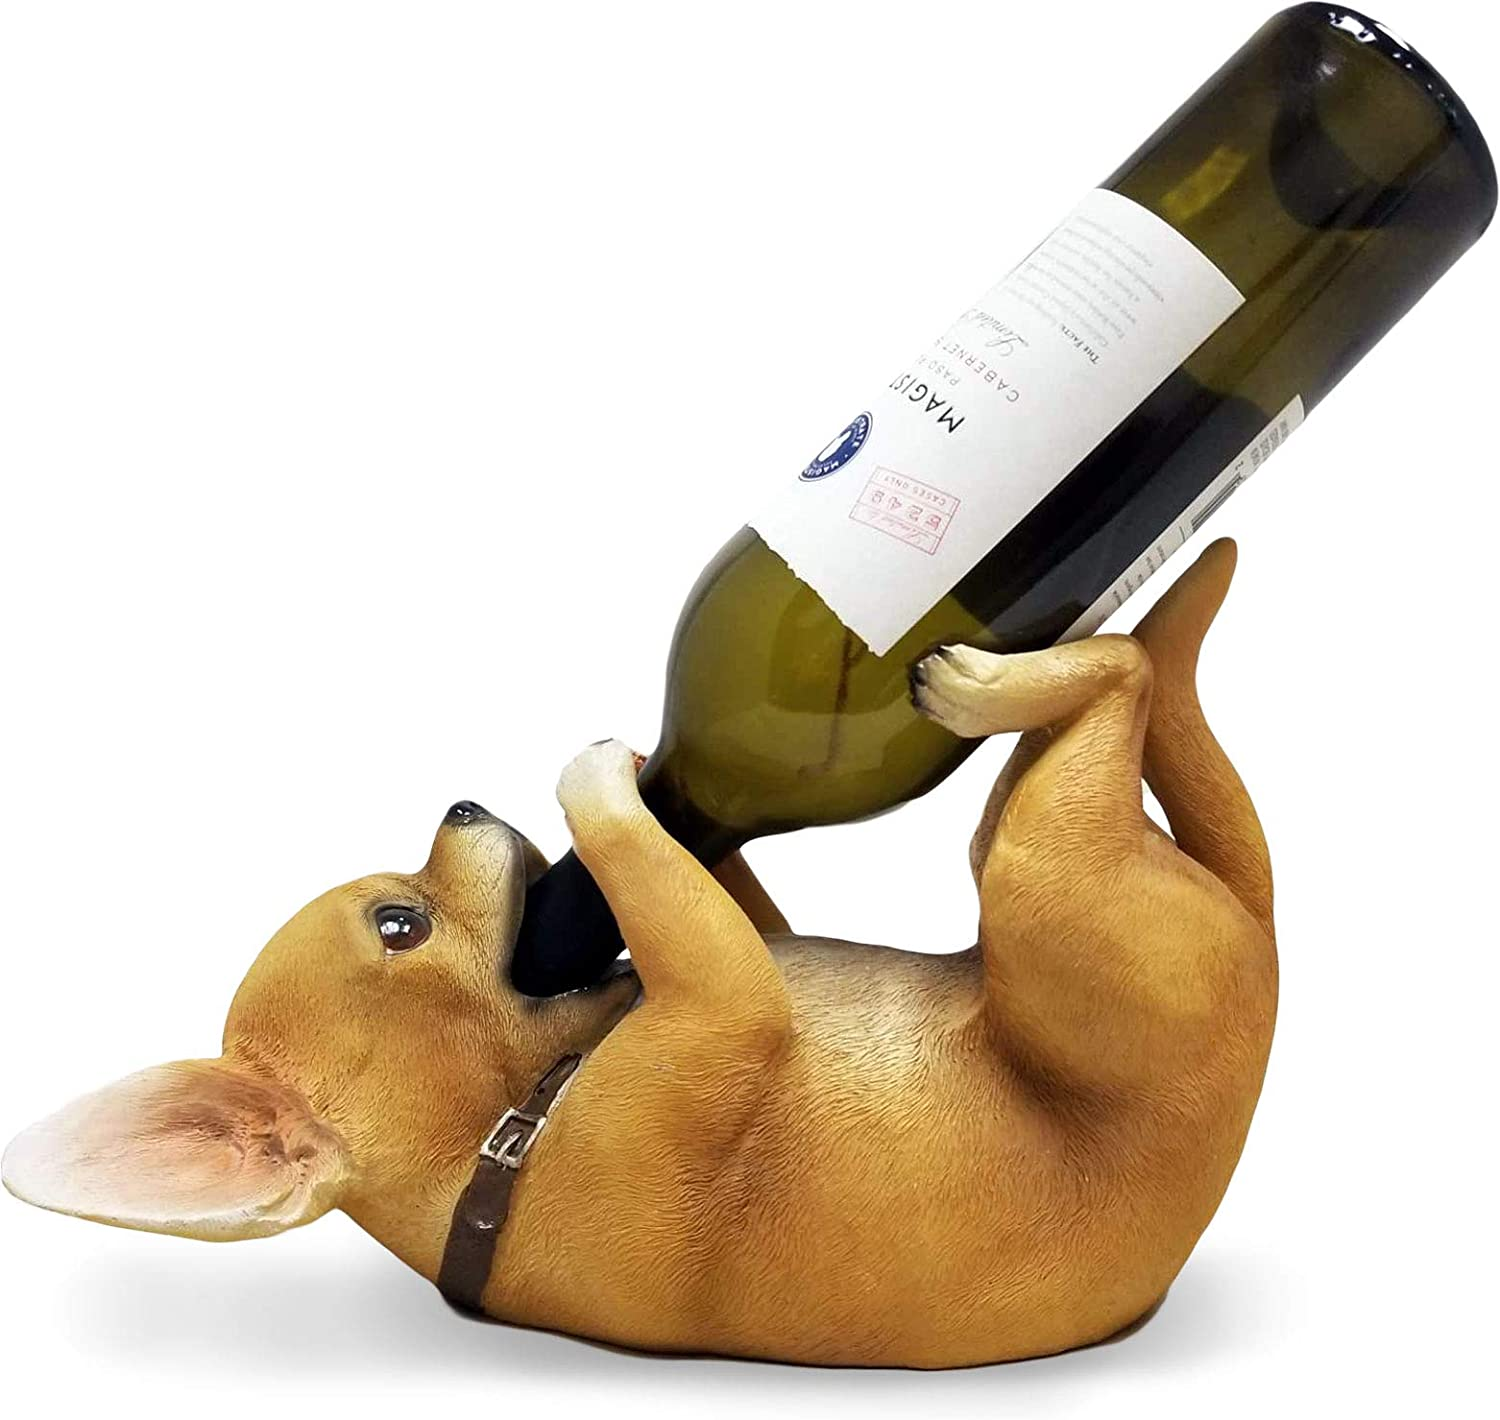 DWK - Tiny Tippler - Chihuahua Guzzler Tabletop Wine Holder Display Figure and Bottle Caddy Puppy Dog Novelty Home Décor Kitchen Accessory Dining Accent, 11-inch